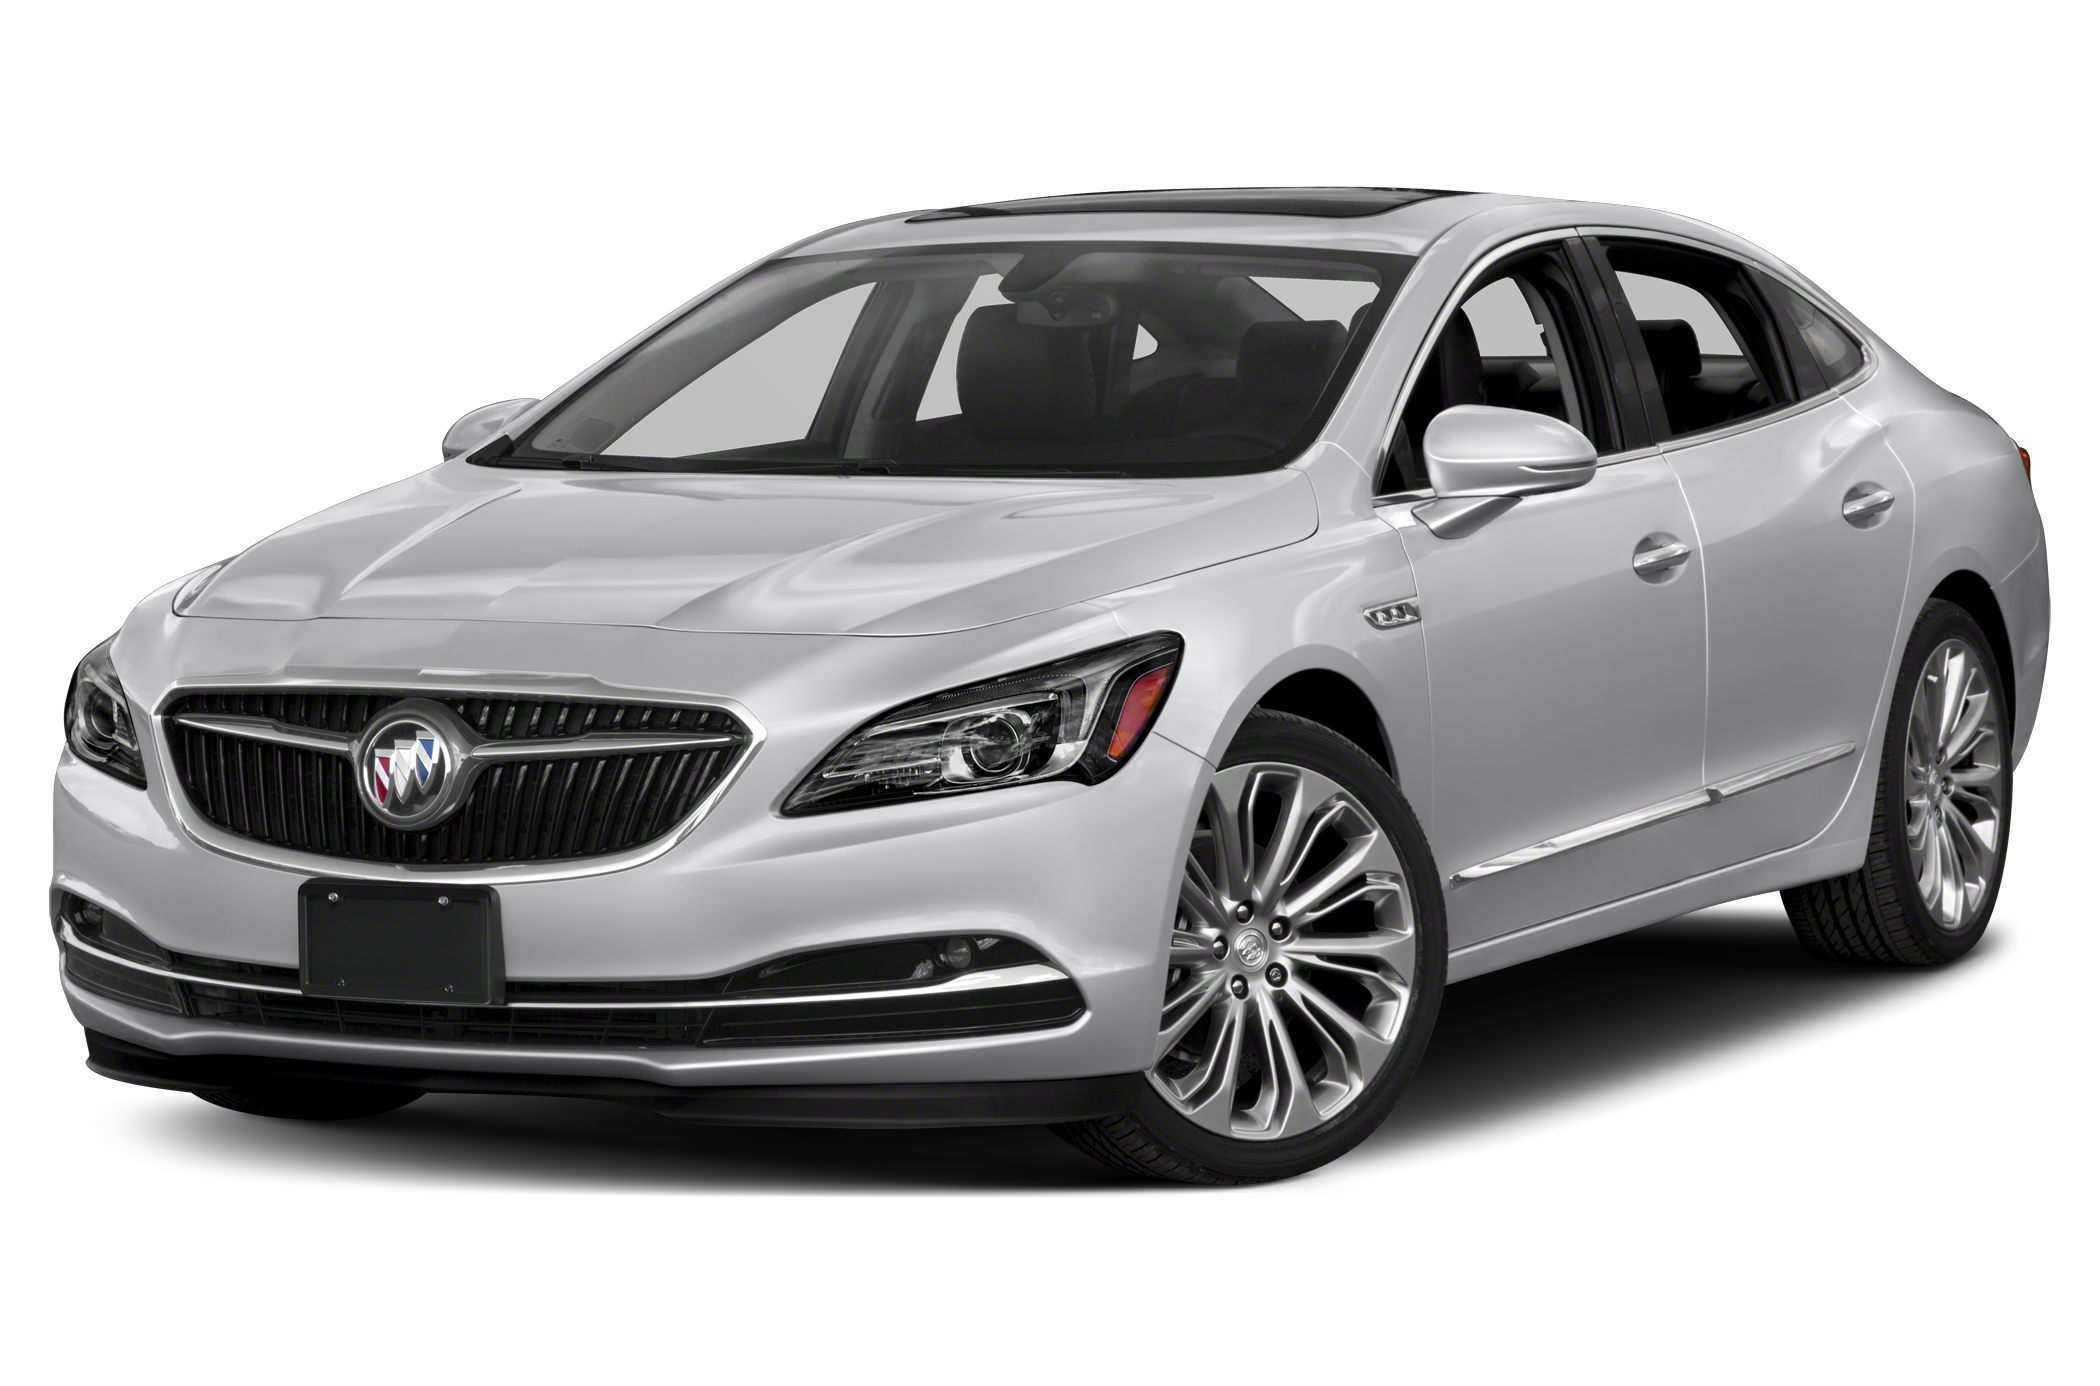 91 Best Review 2019 Buick Sedan Release Date by 2019 Buick Sedan